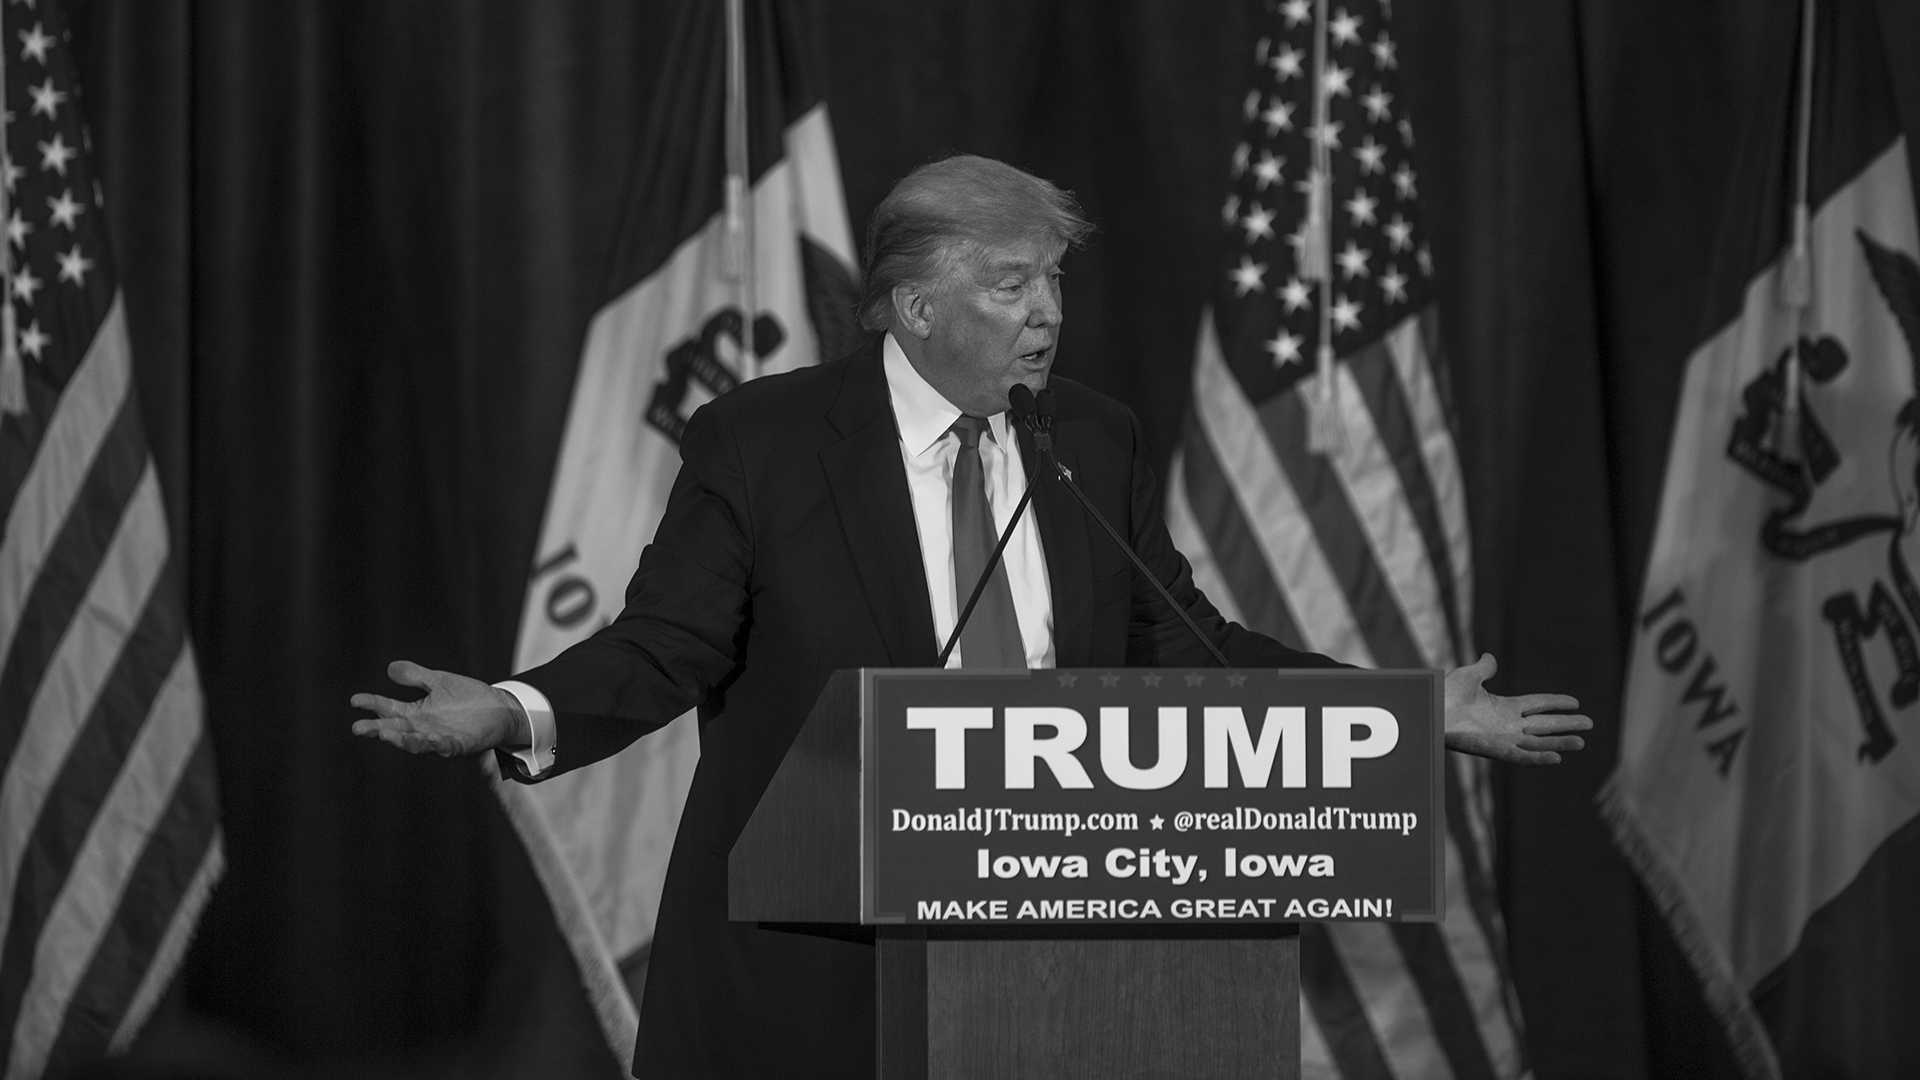 Donald Trump speaks to a crowd at the University of Iowa Field house on Tuesday Jan 26, 2016. Trump is currently tied in Iowa with Ted Cruz. (The Daily Iowan/Jordan Gale)